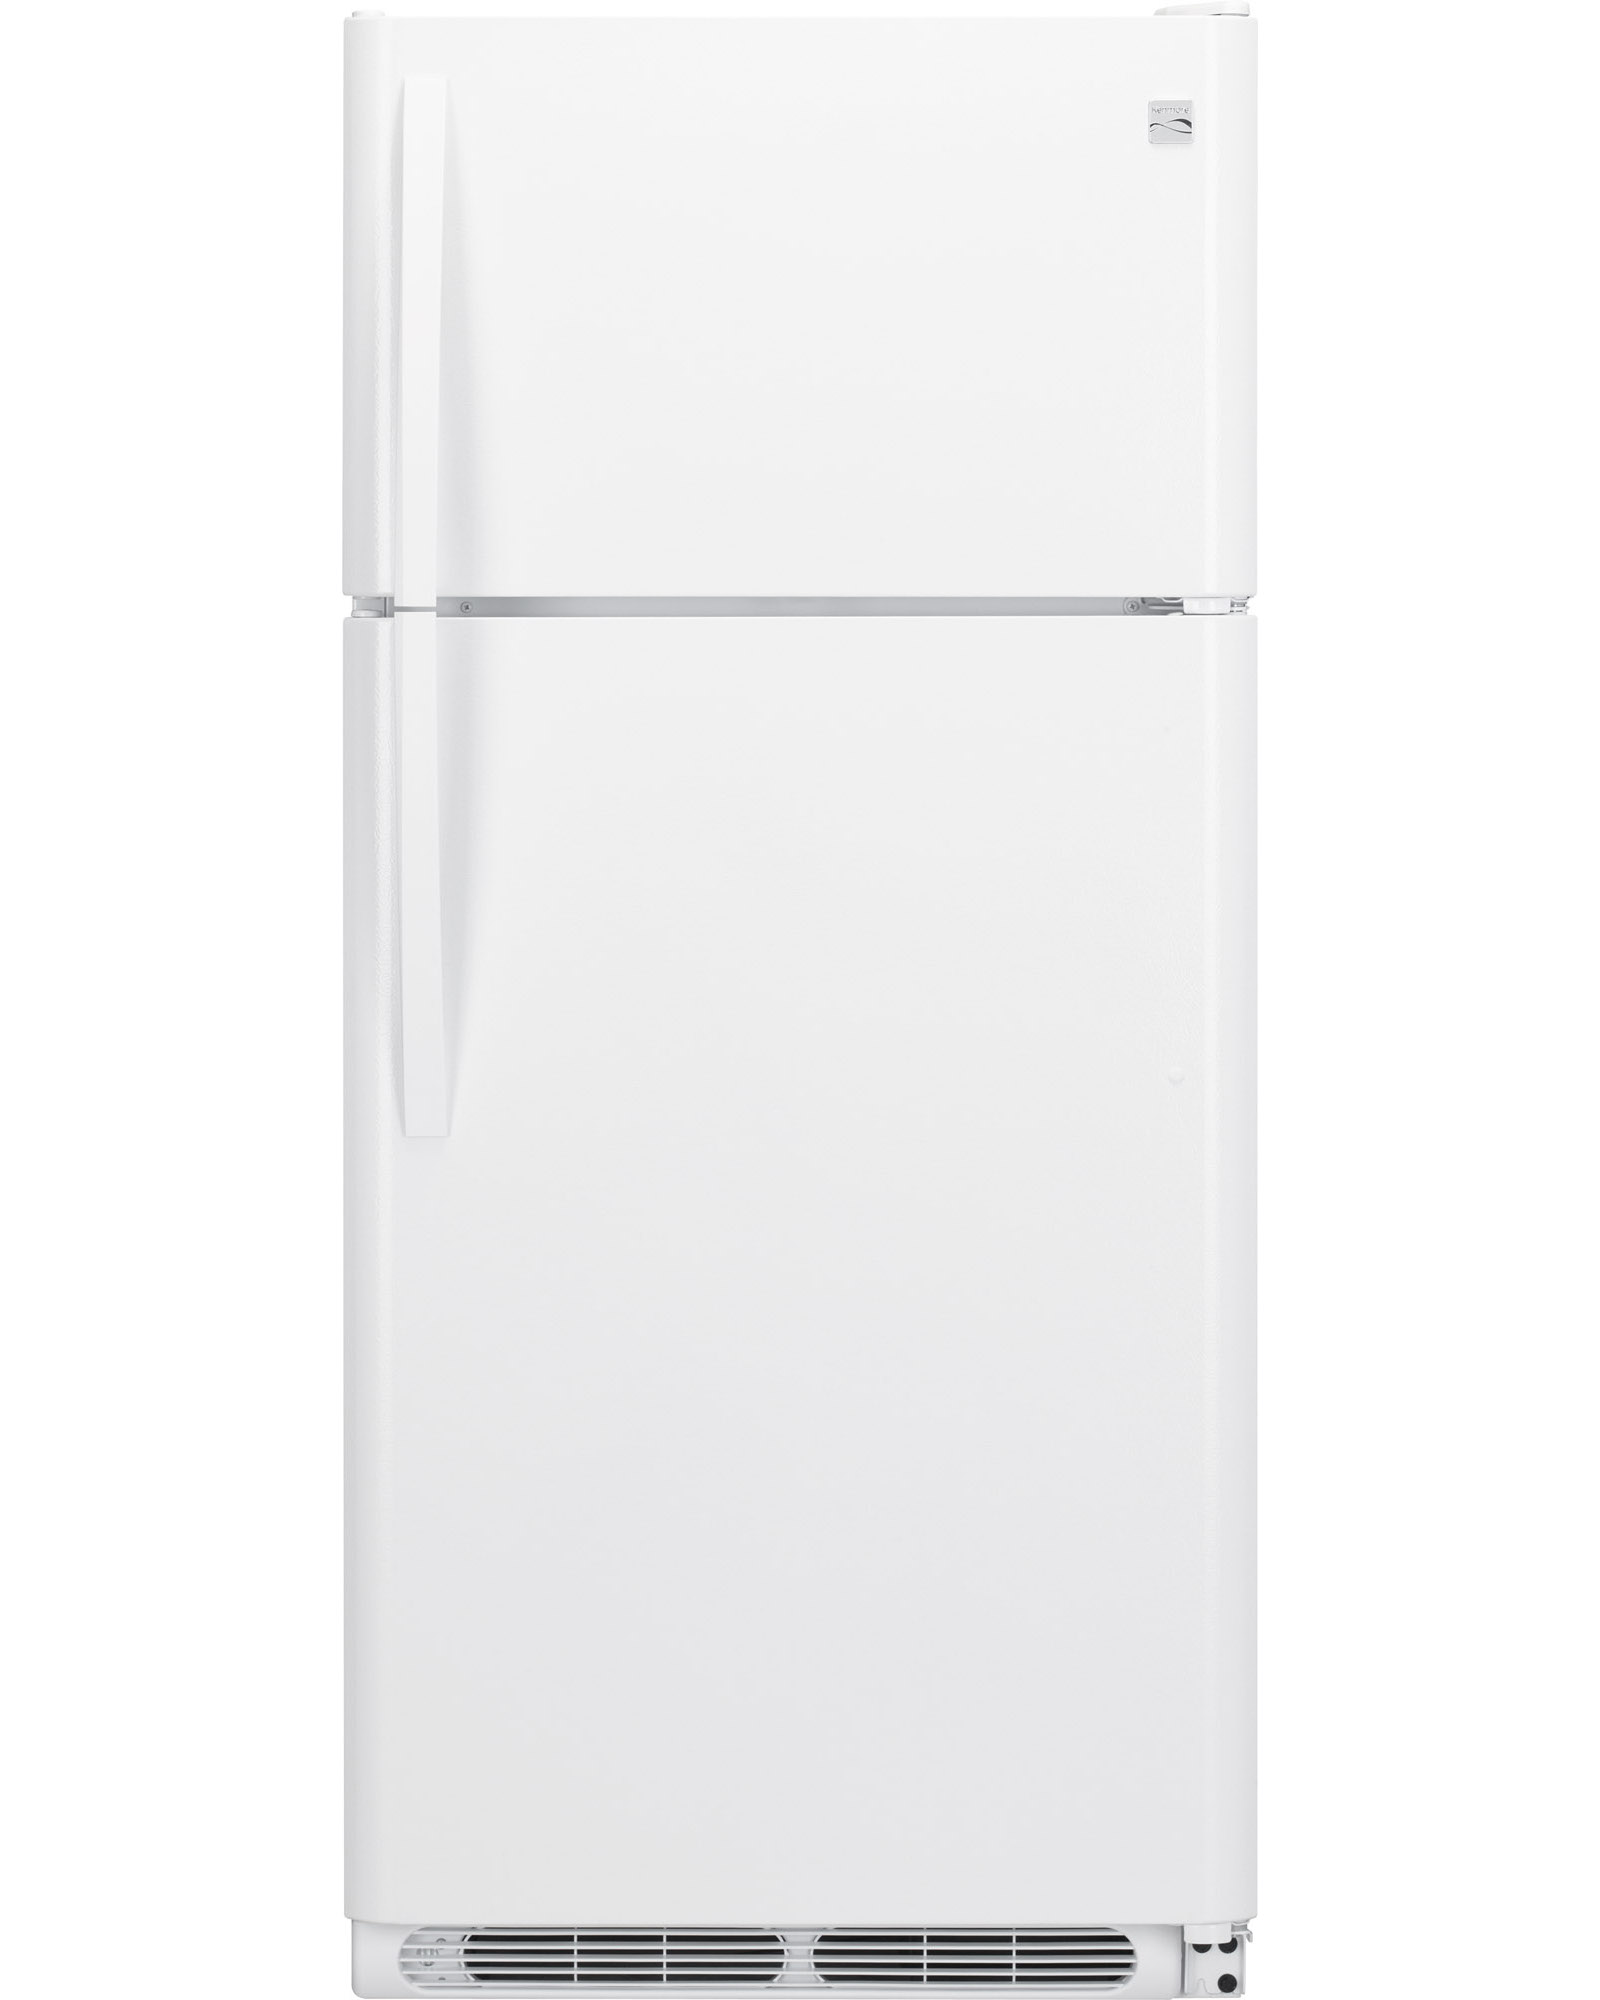 Kenmore 60502 18 cu. ft. Top Freezer Refrigerator w/ Glass Shelves - White